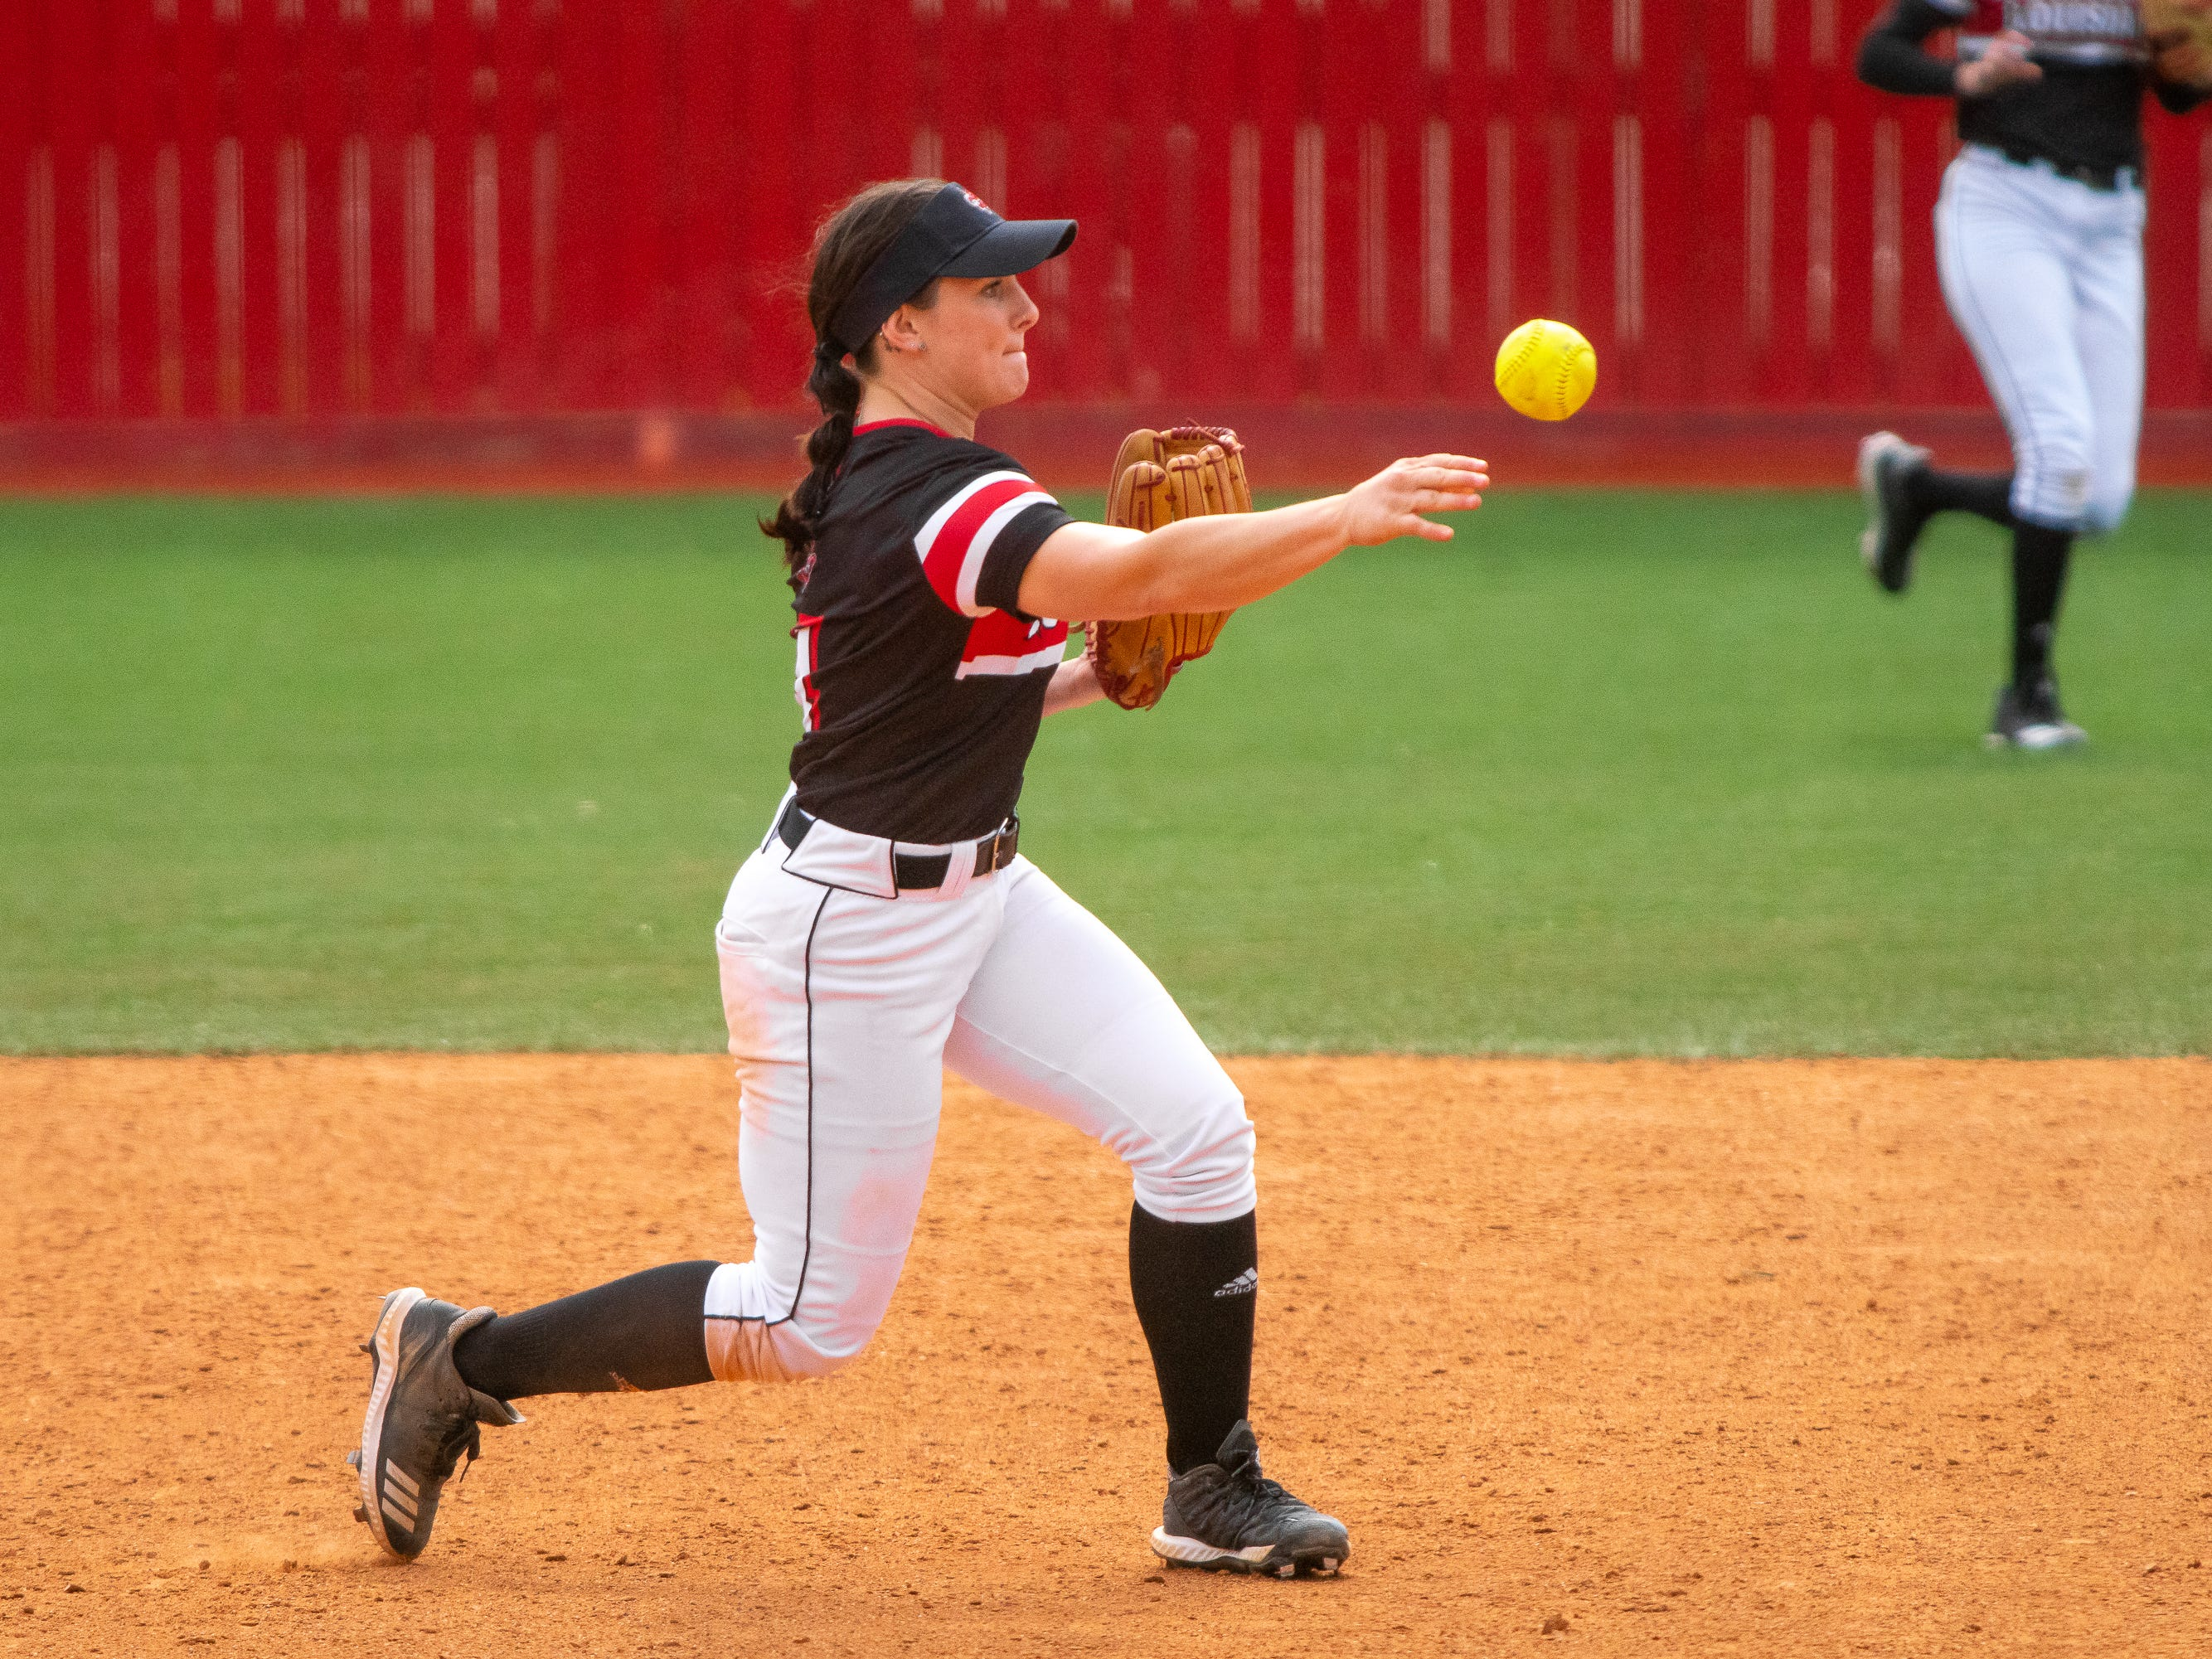 UL's Keeli Milligan throws the ball to first base as the Ragin' Cajuns take on the Troy Trojans at Yvette Girouard Field at Lamson Park on Saturday, March 16, 2019.